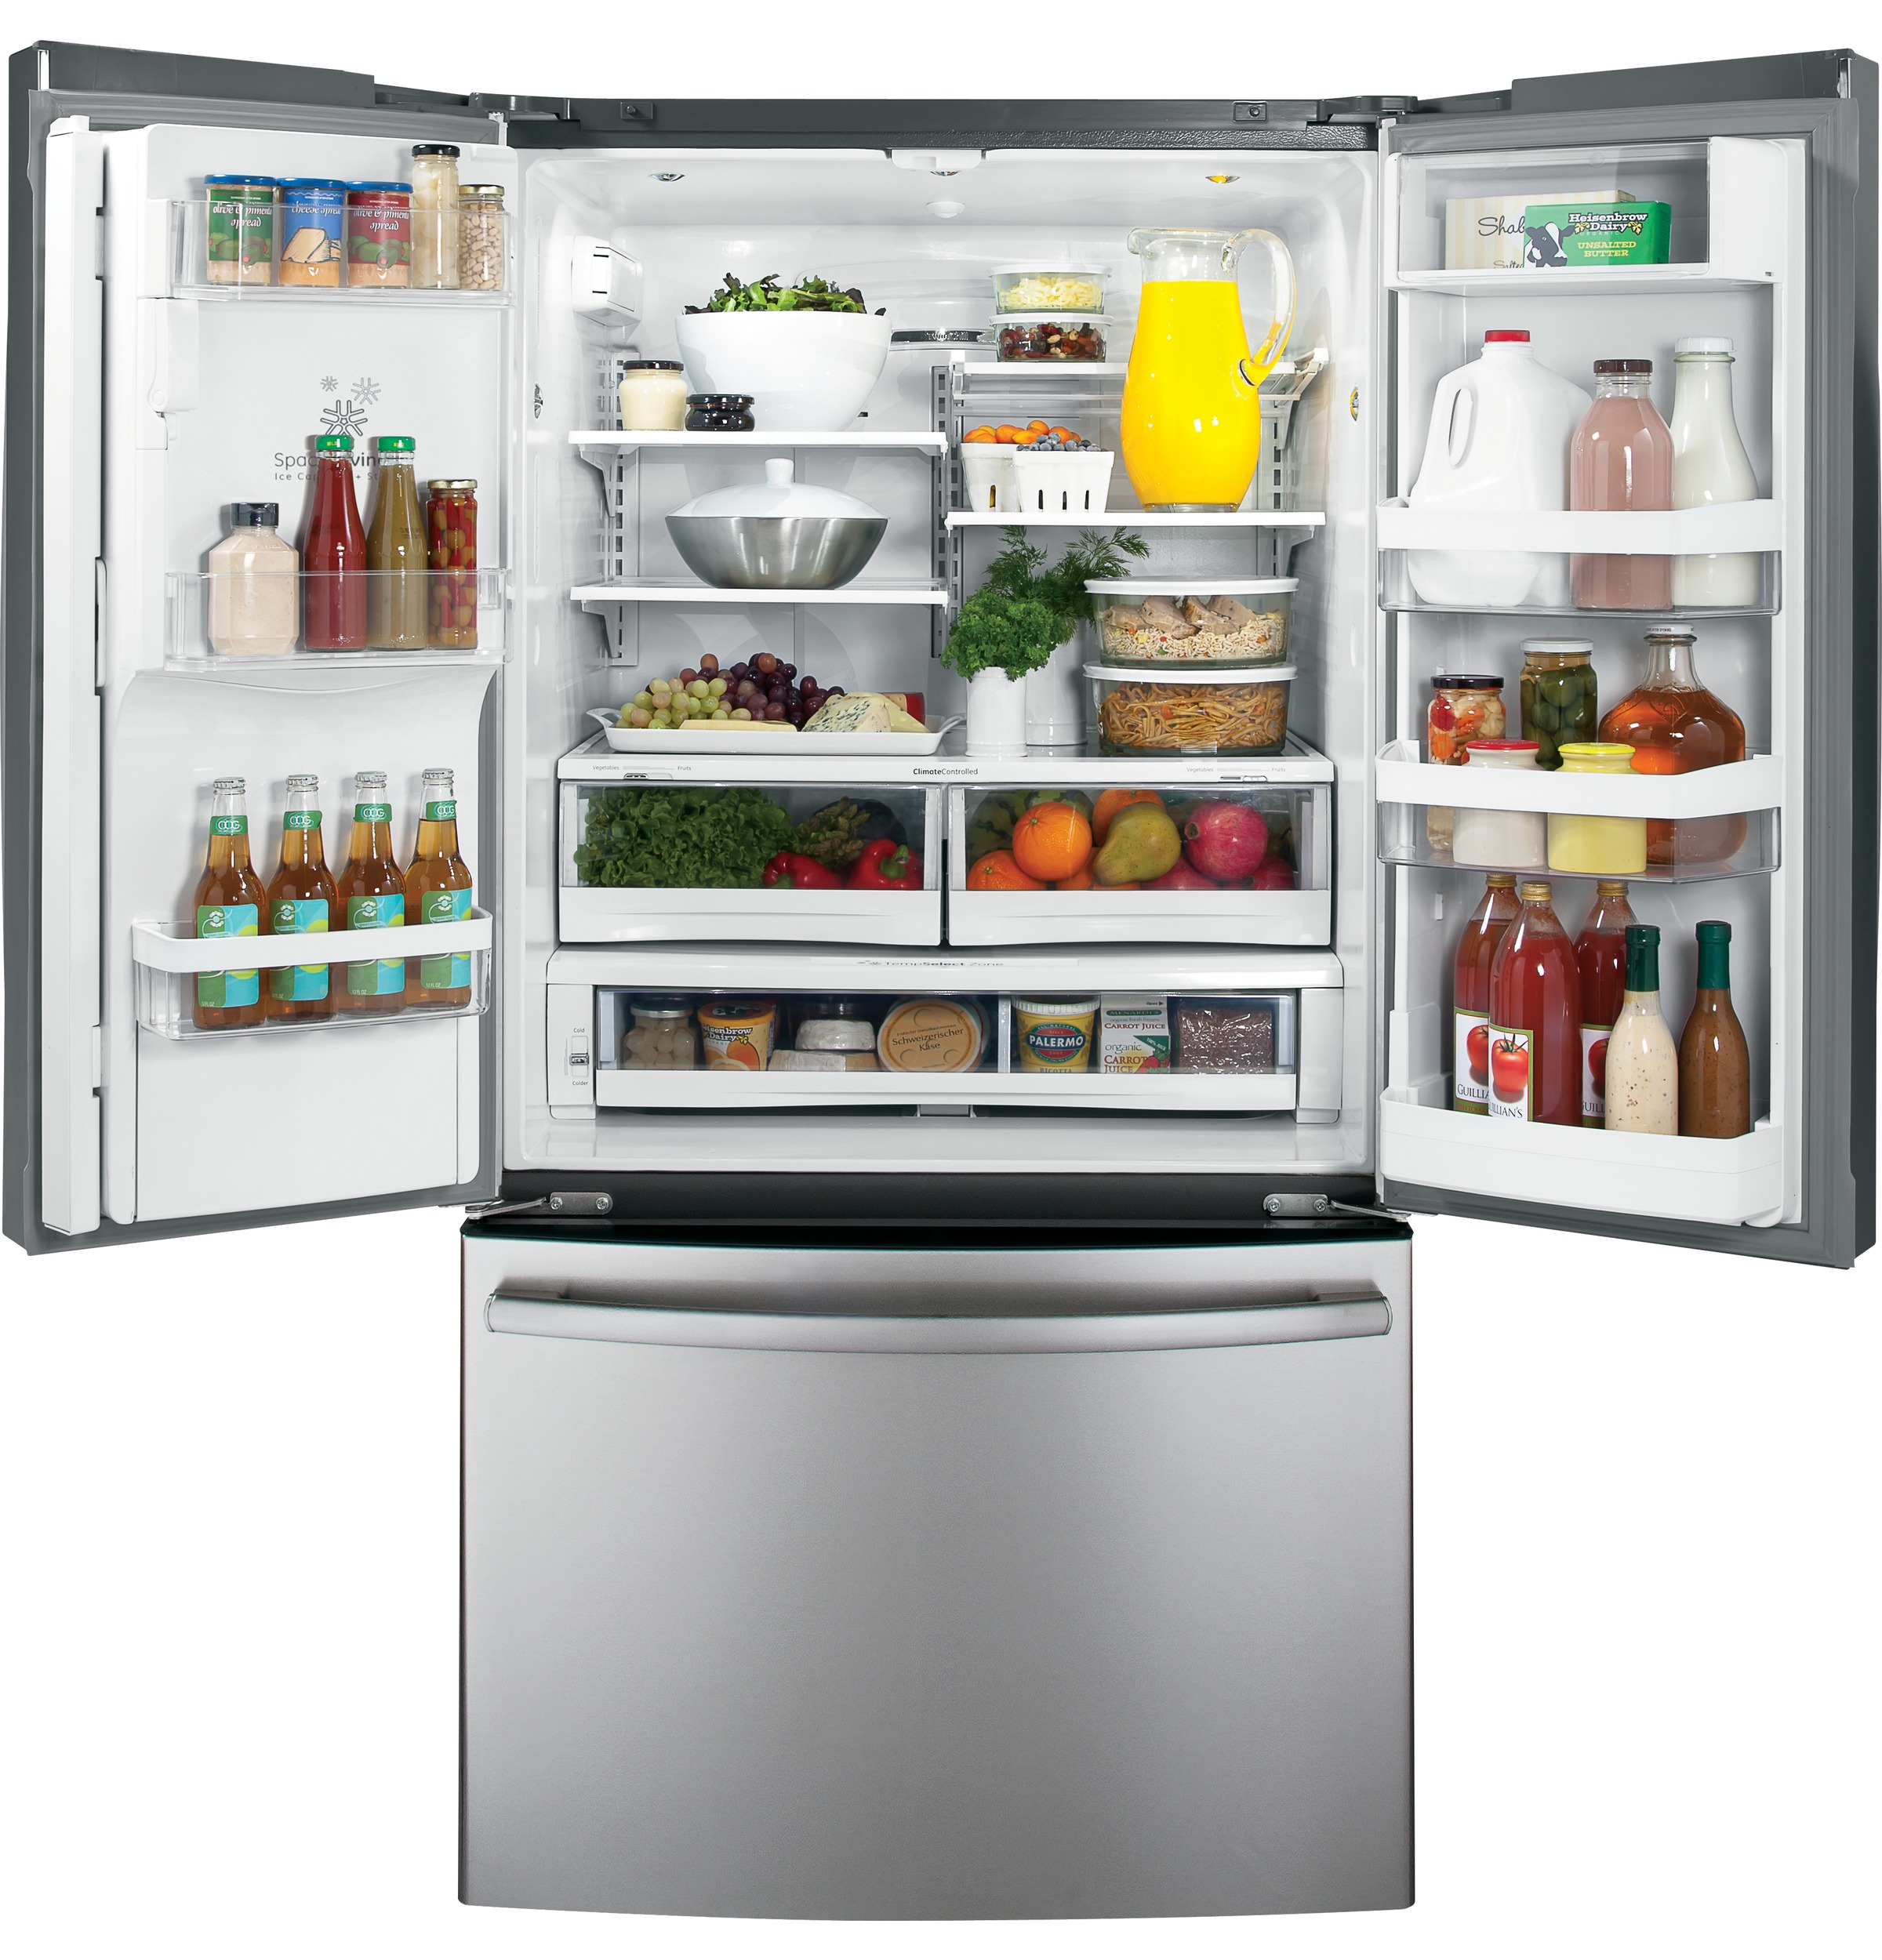 Free Picture Indoors Contemporary Stove Refrigerator: GE® 27.7 Cu. Ft. French-Door Refrigerator